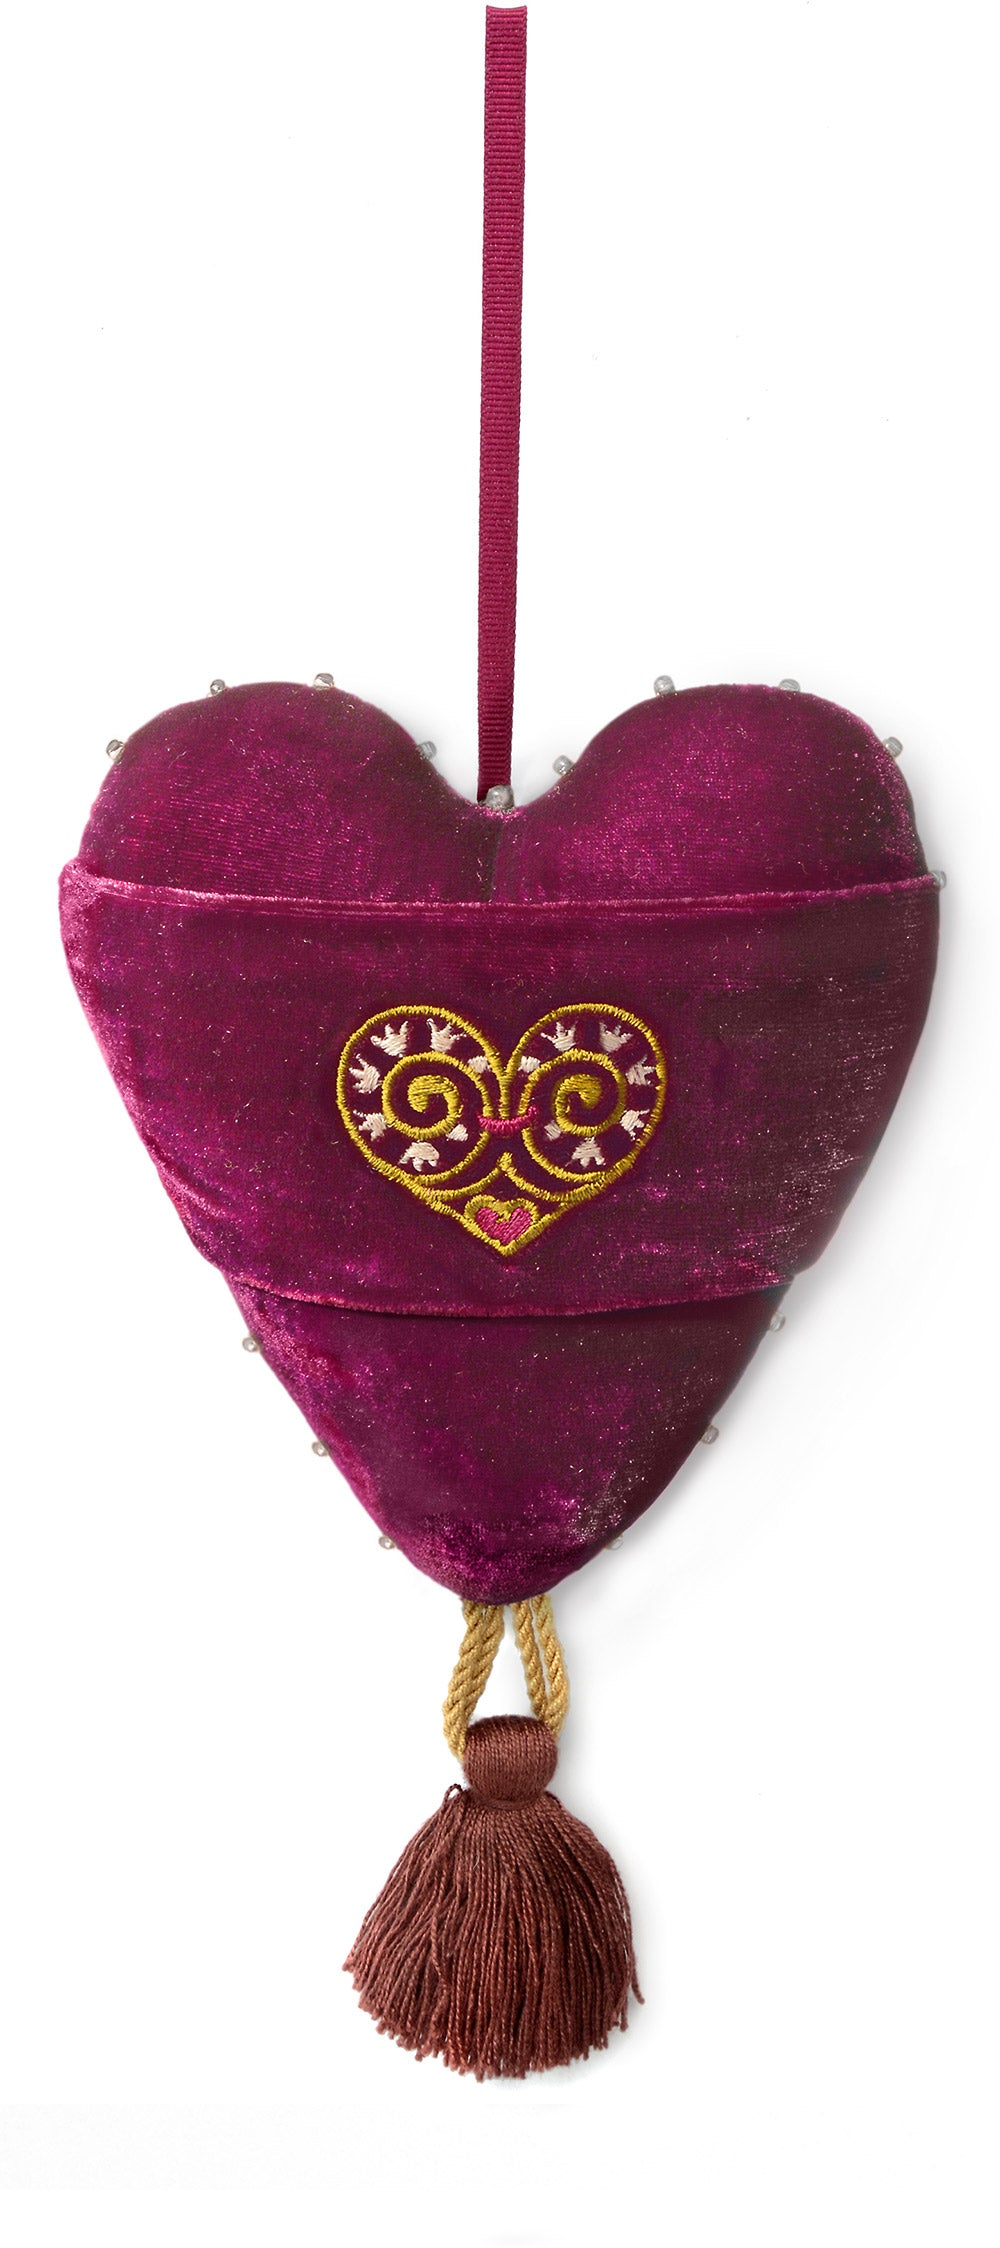 back of stuffed heart, victorian striped fabric, love is enough, heart charm, romantic heart, handmade heart, stuffed heart, valentine heart, hand sewn, silk velvet